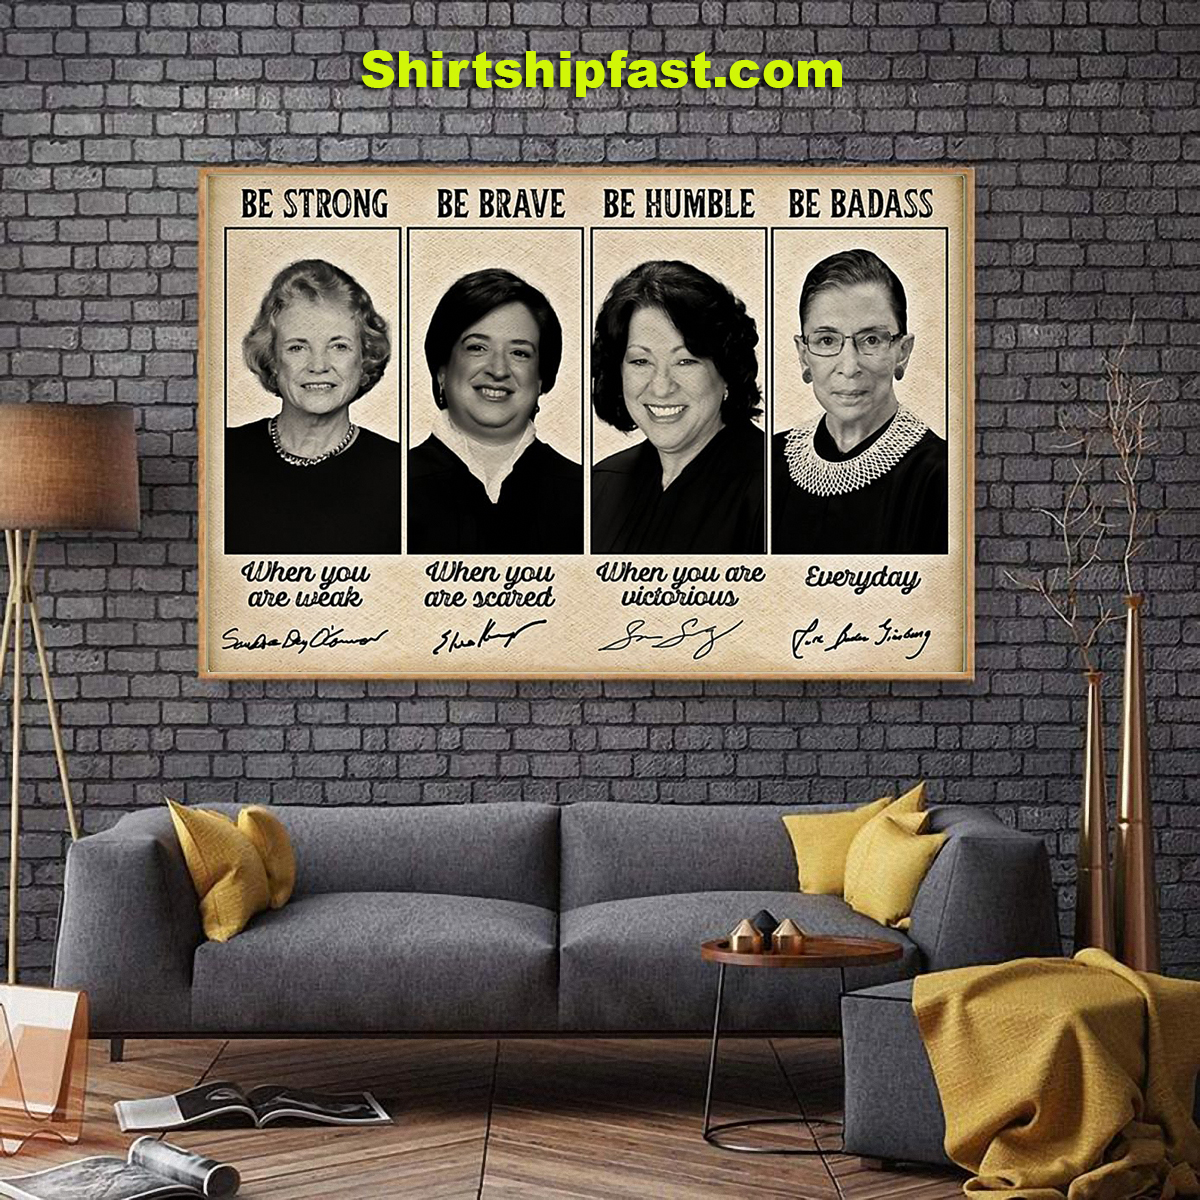 Sandra Day O'connor Elena Kagan be strong be brave be humble be badass signature poster